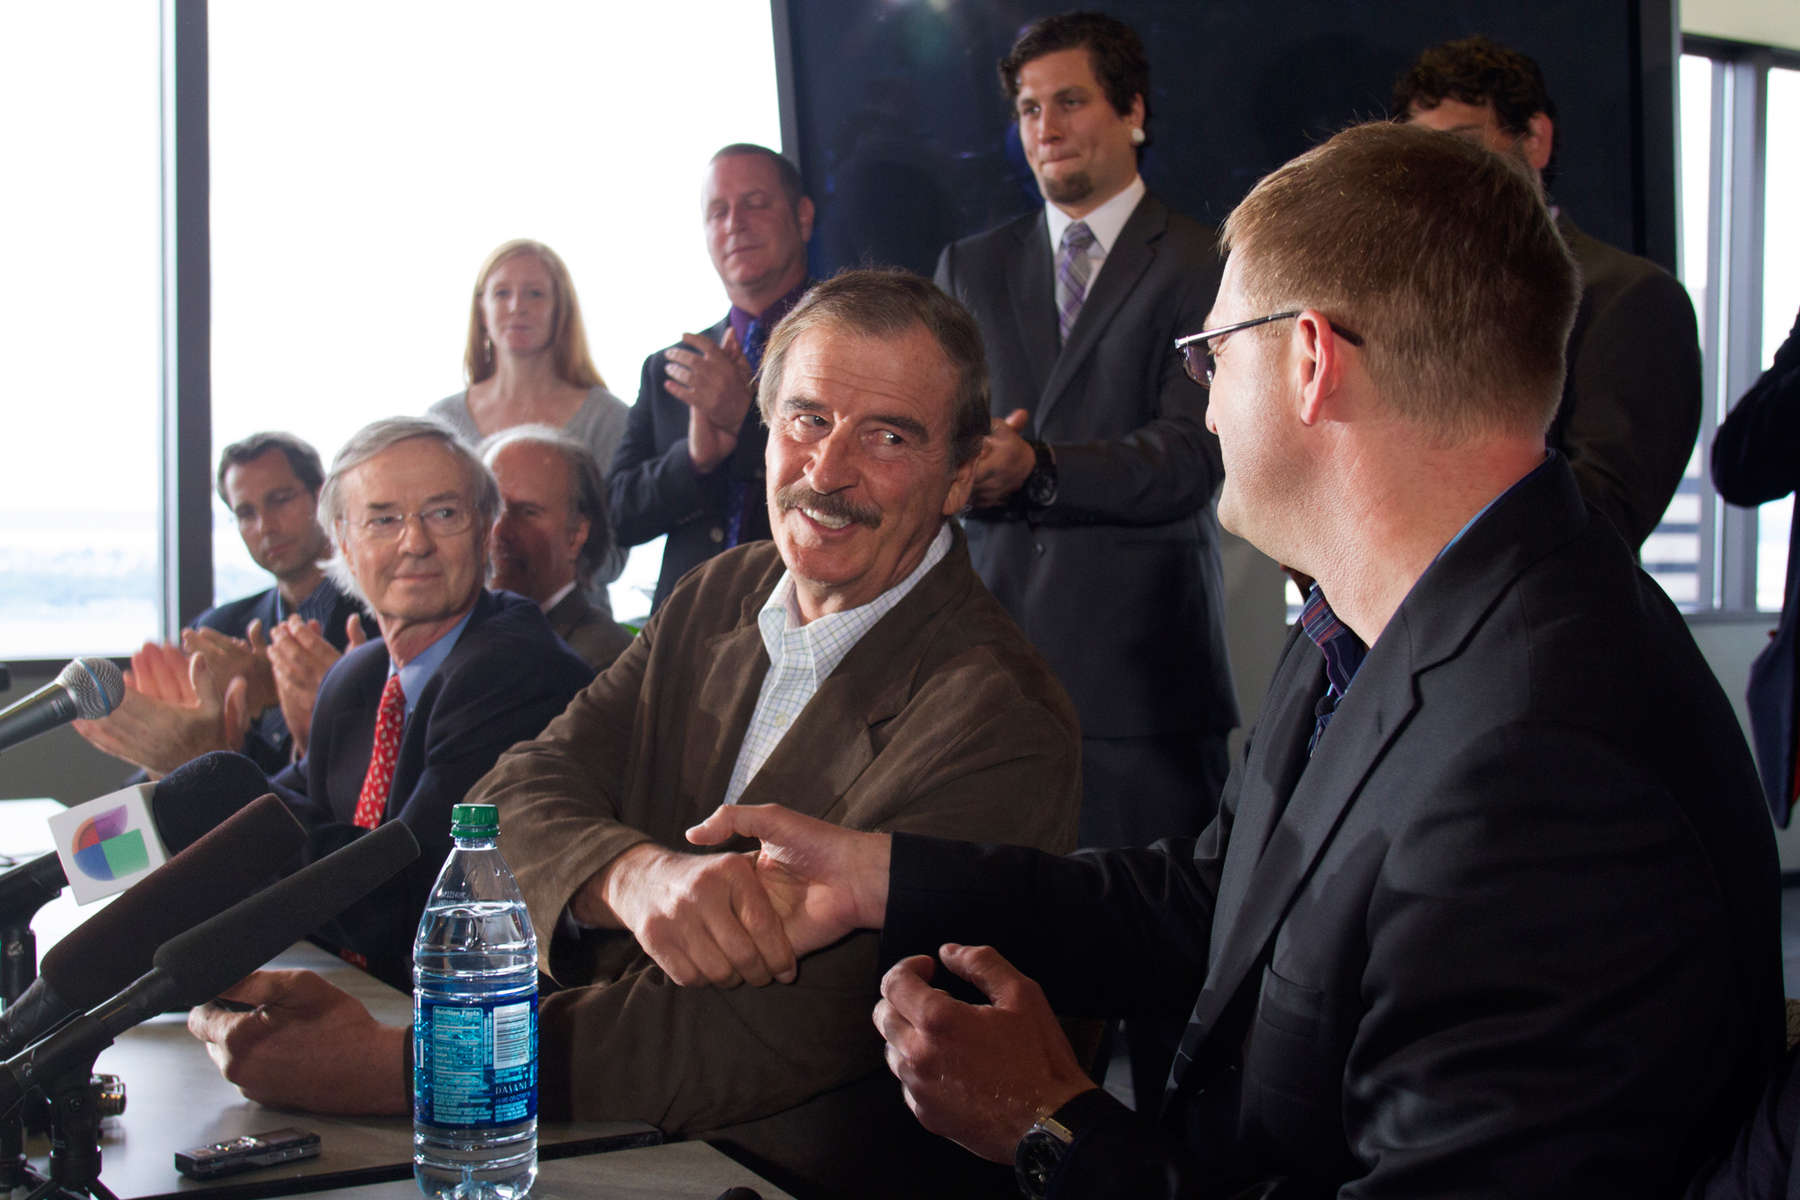 Former Mexican President Vicente Fox (left) shakes hands with  Jamen Shively, (right) Founder and CEO of Diego Pellicer, Inc. during a press conference with other marijuana industry leaders in the Columbia Tower, in Seattle, Wash. on May 30, 2013. (© copyright Karen Ducey)